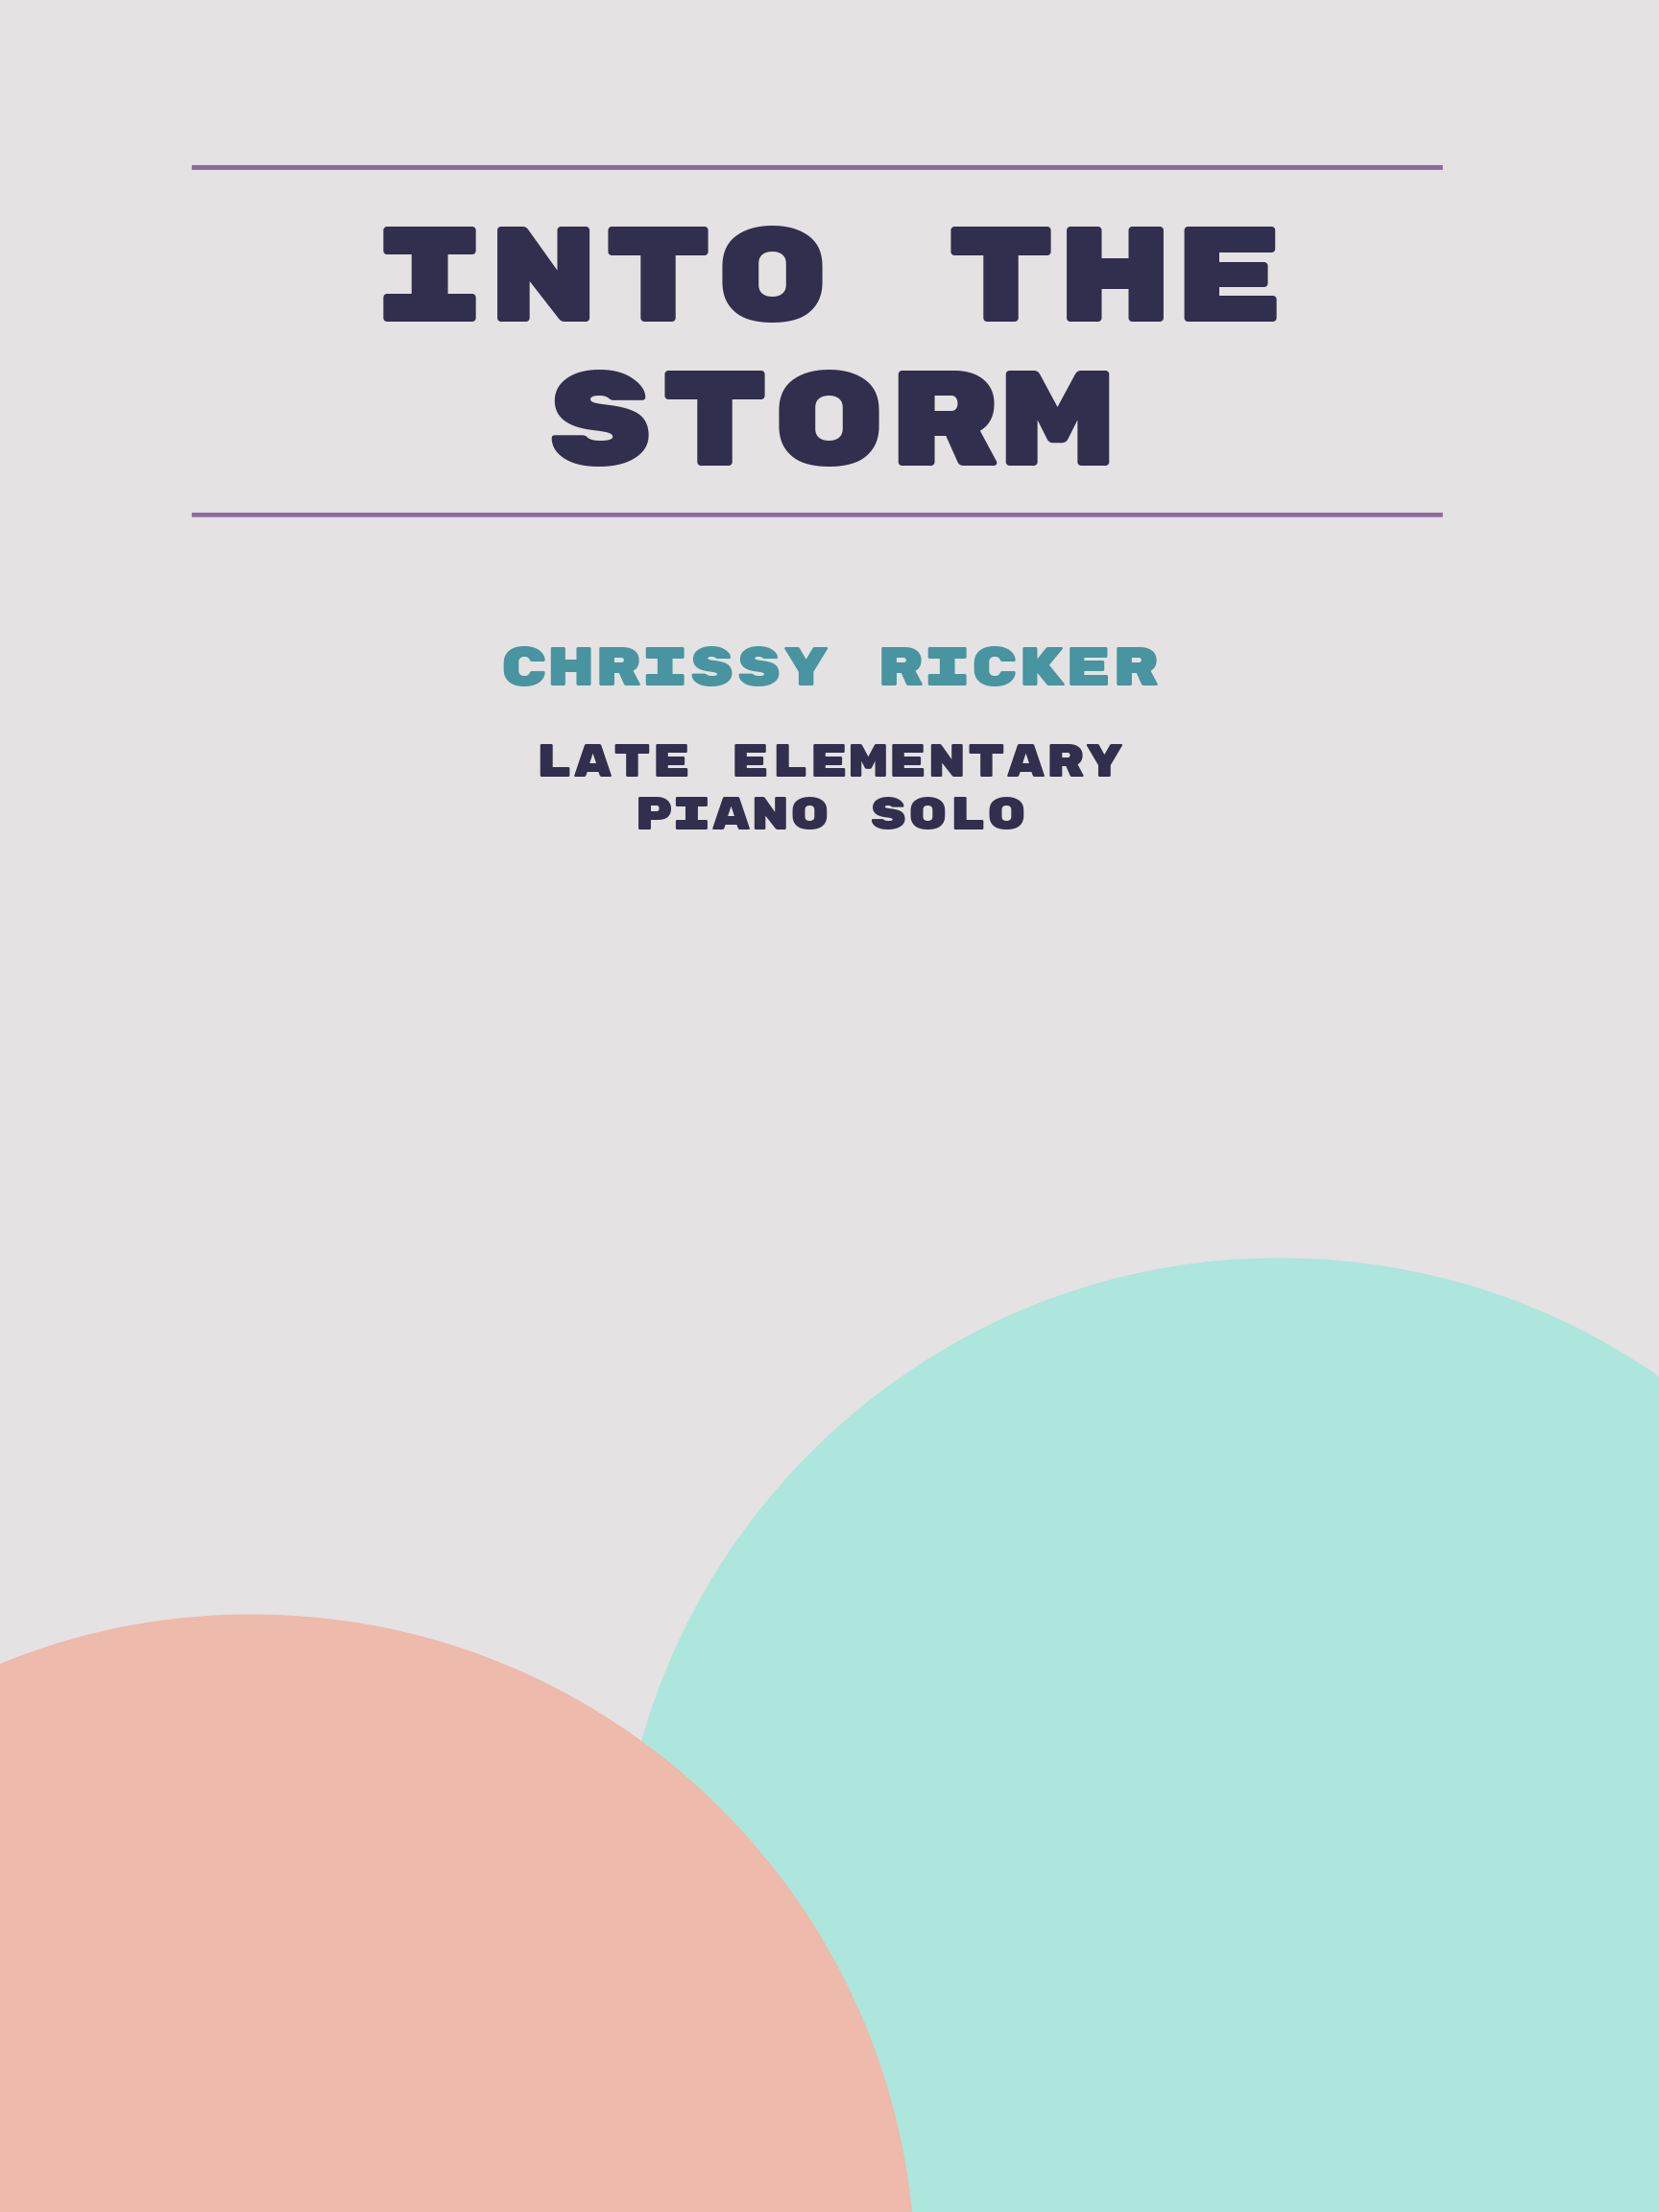 Into the Storm by Chrissy Ricker